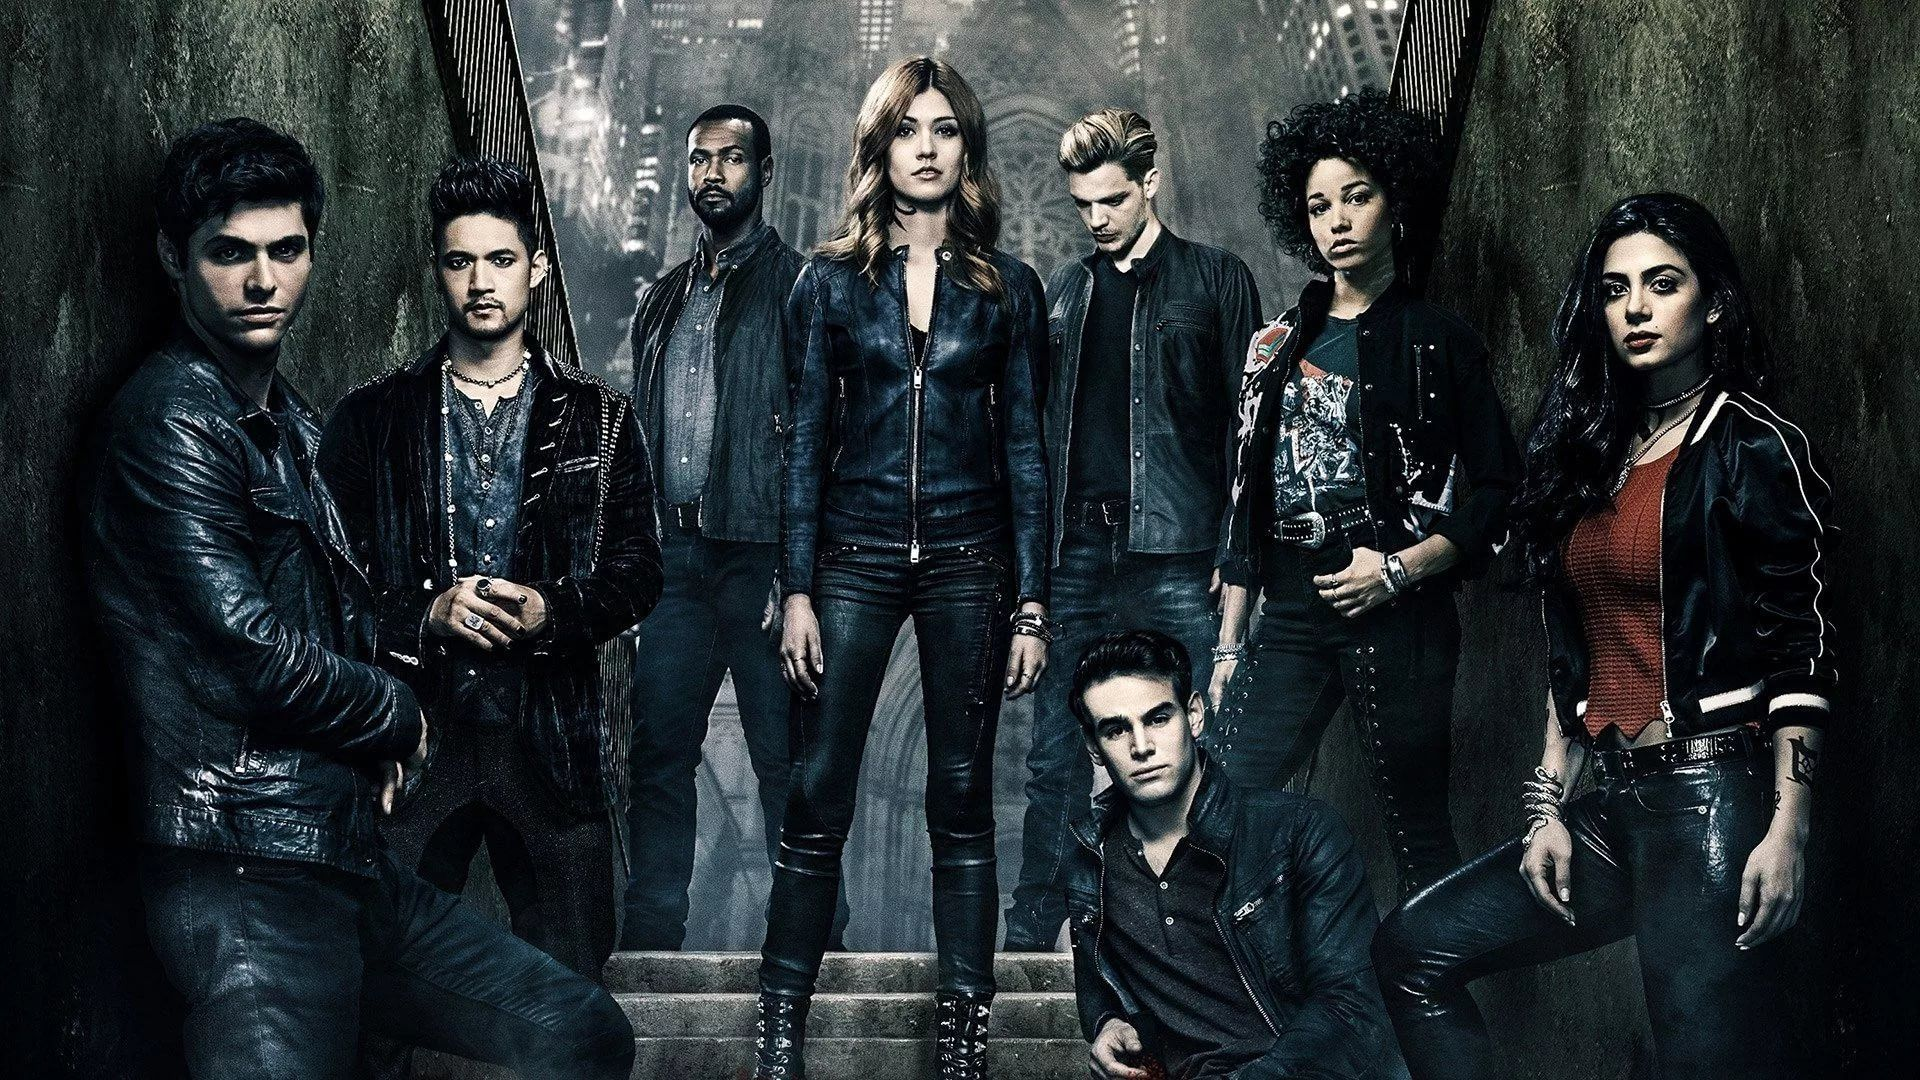 Shadowhunters download free wallpaper image search